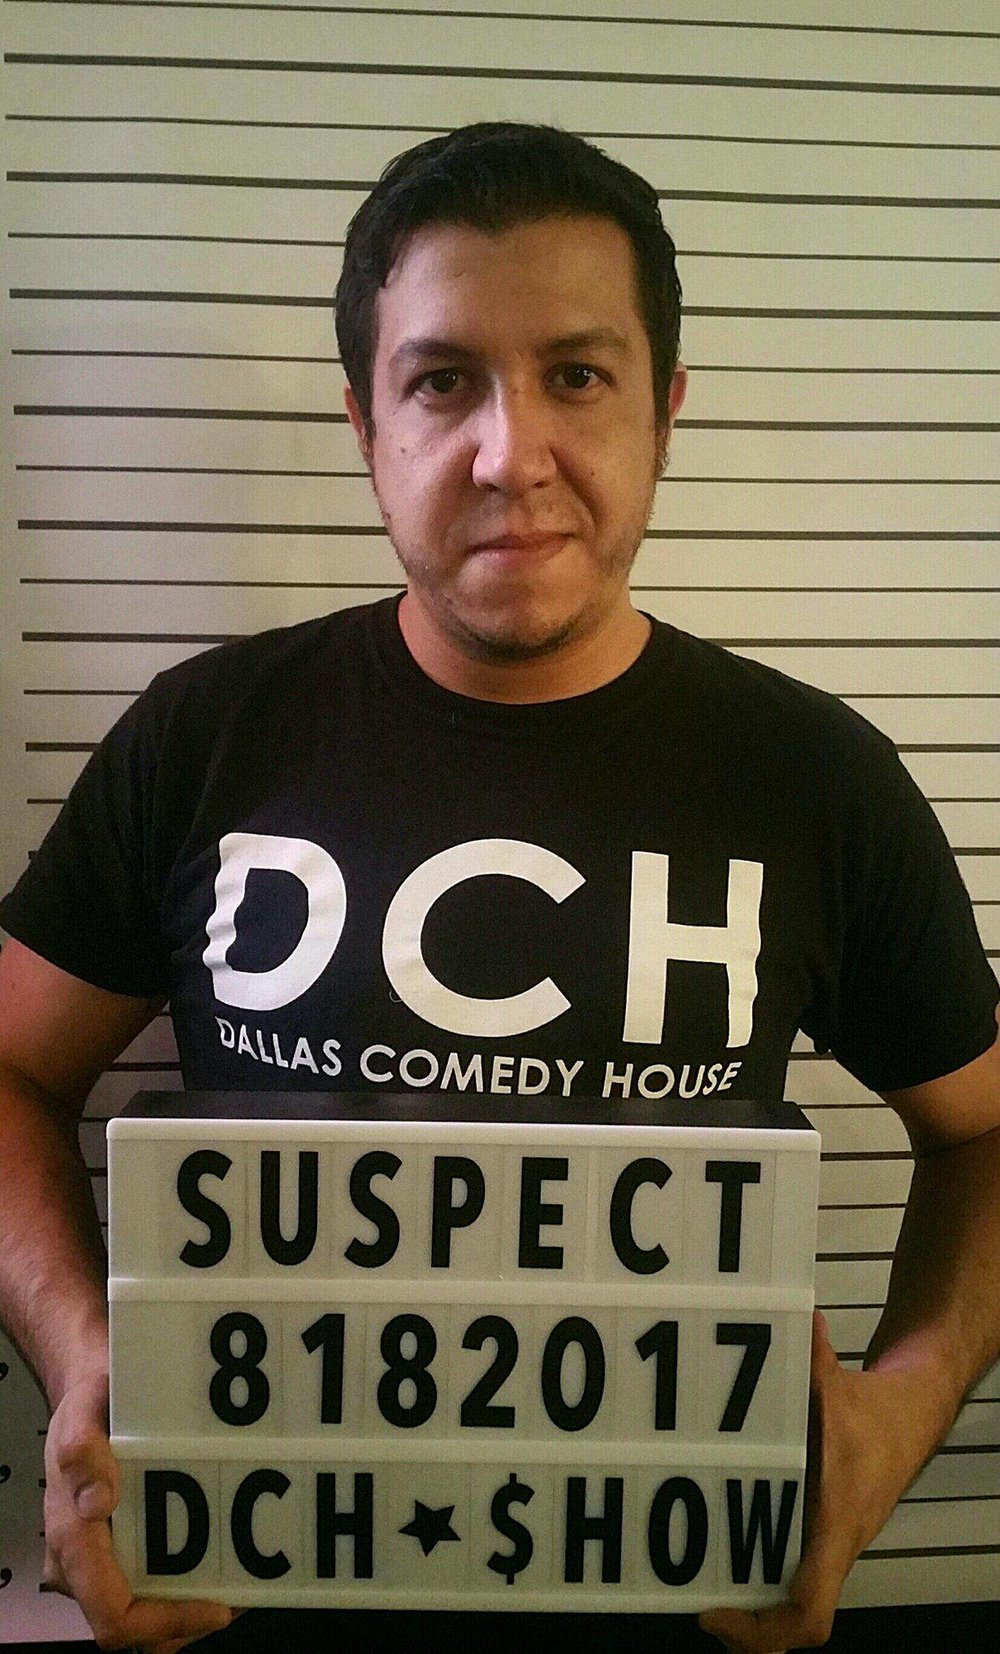 Carlos wearing a real intern shirt while taking a fake mugshot.